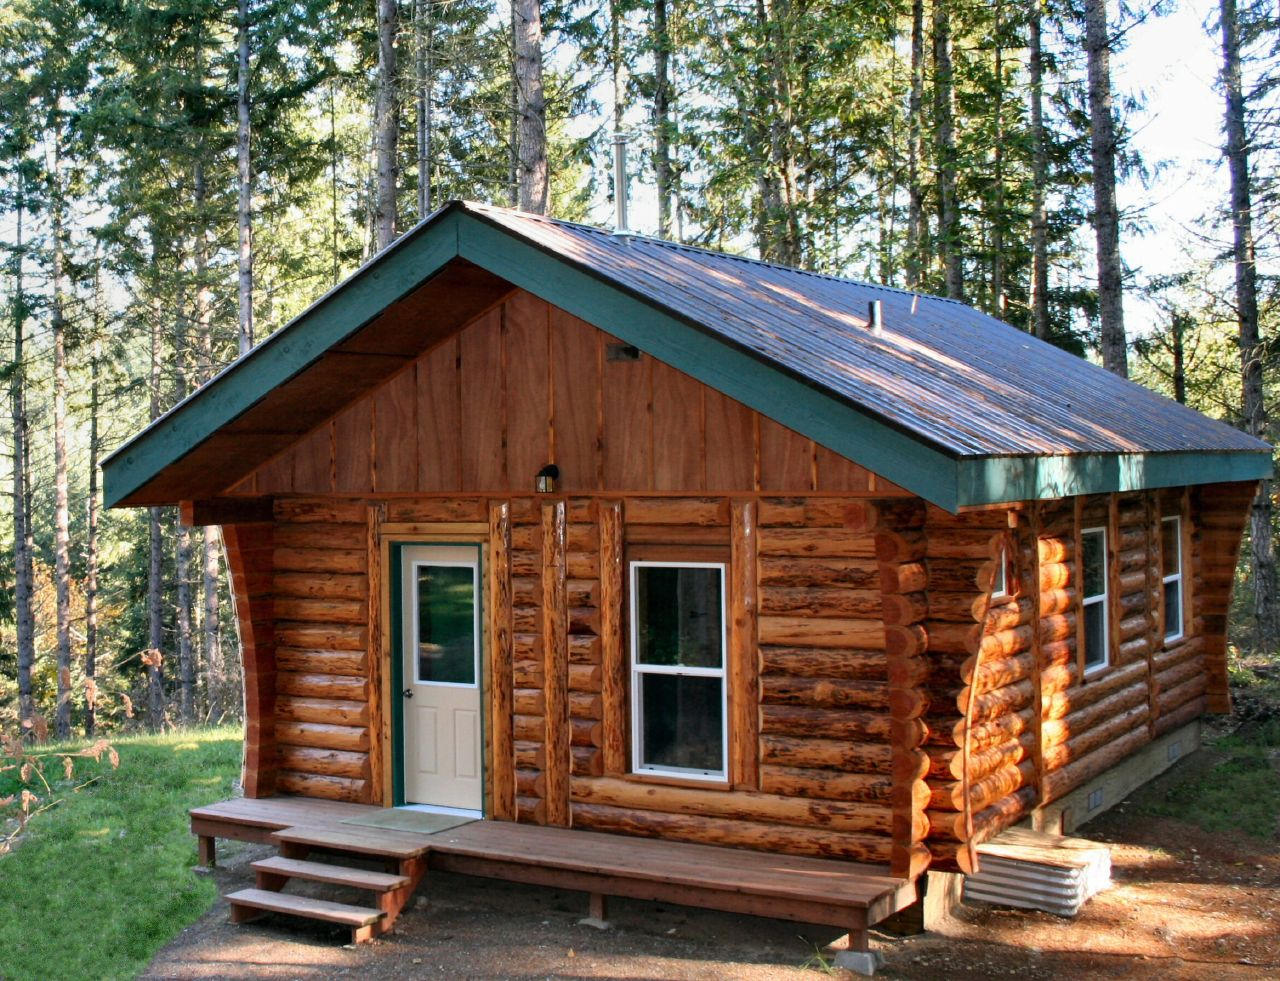 Thoughtskoto for Log cabin architecture